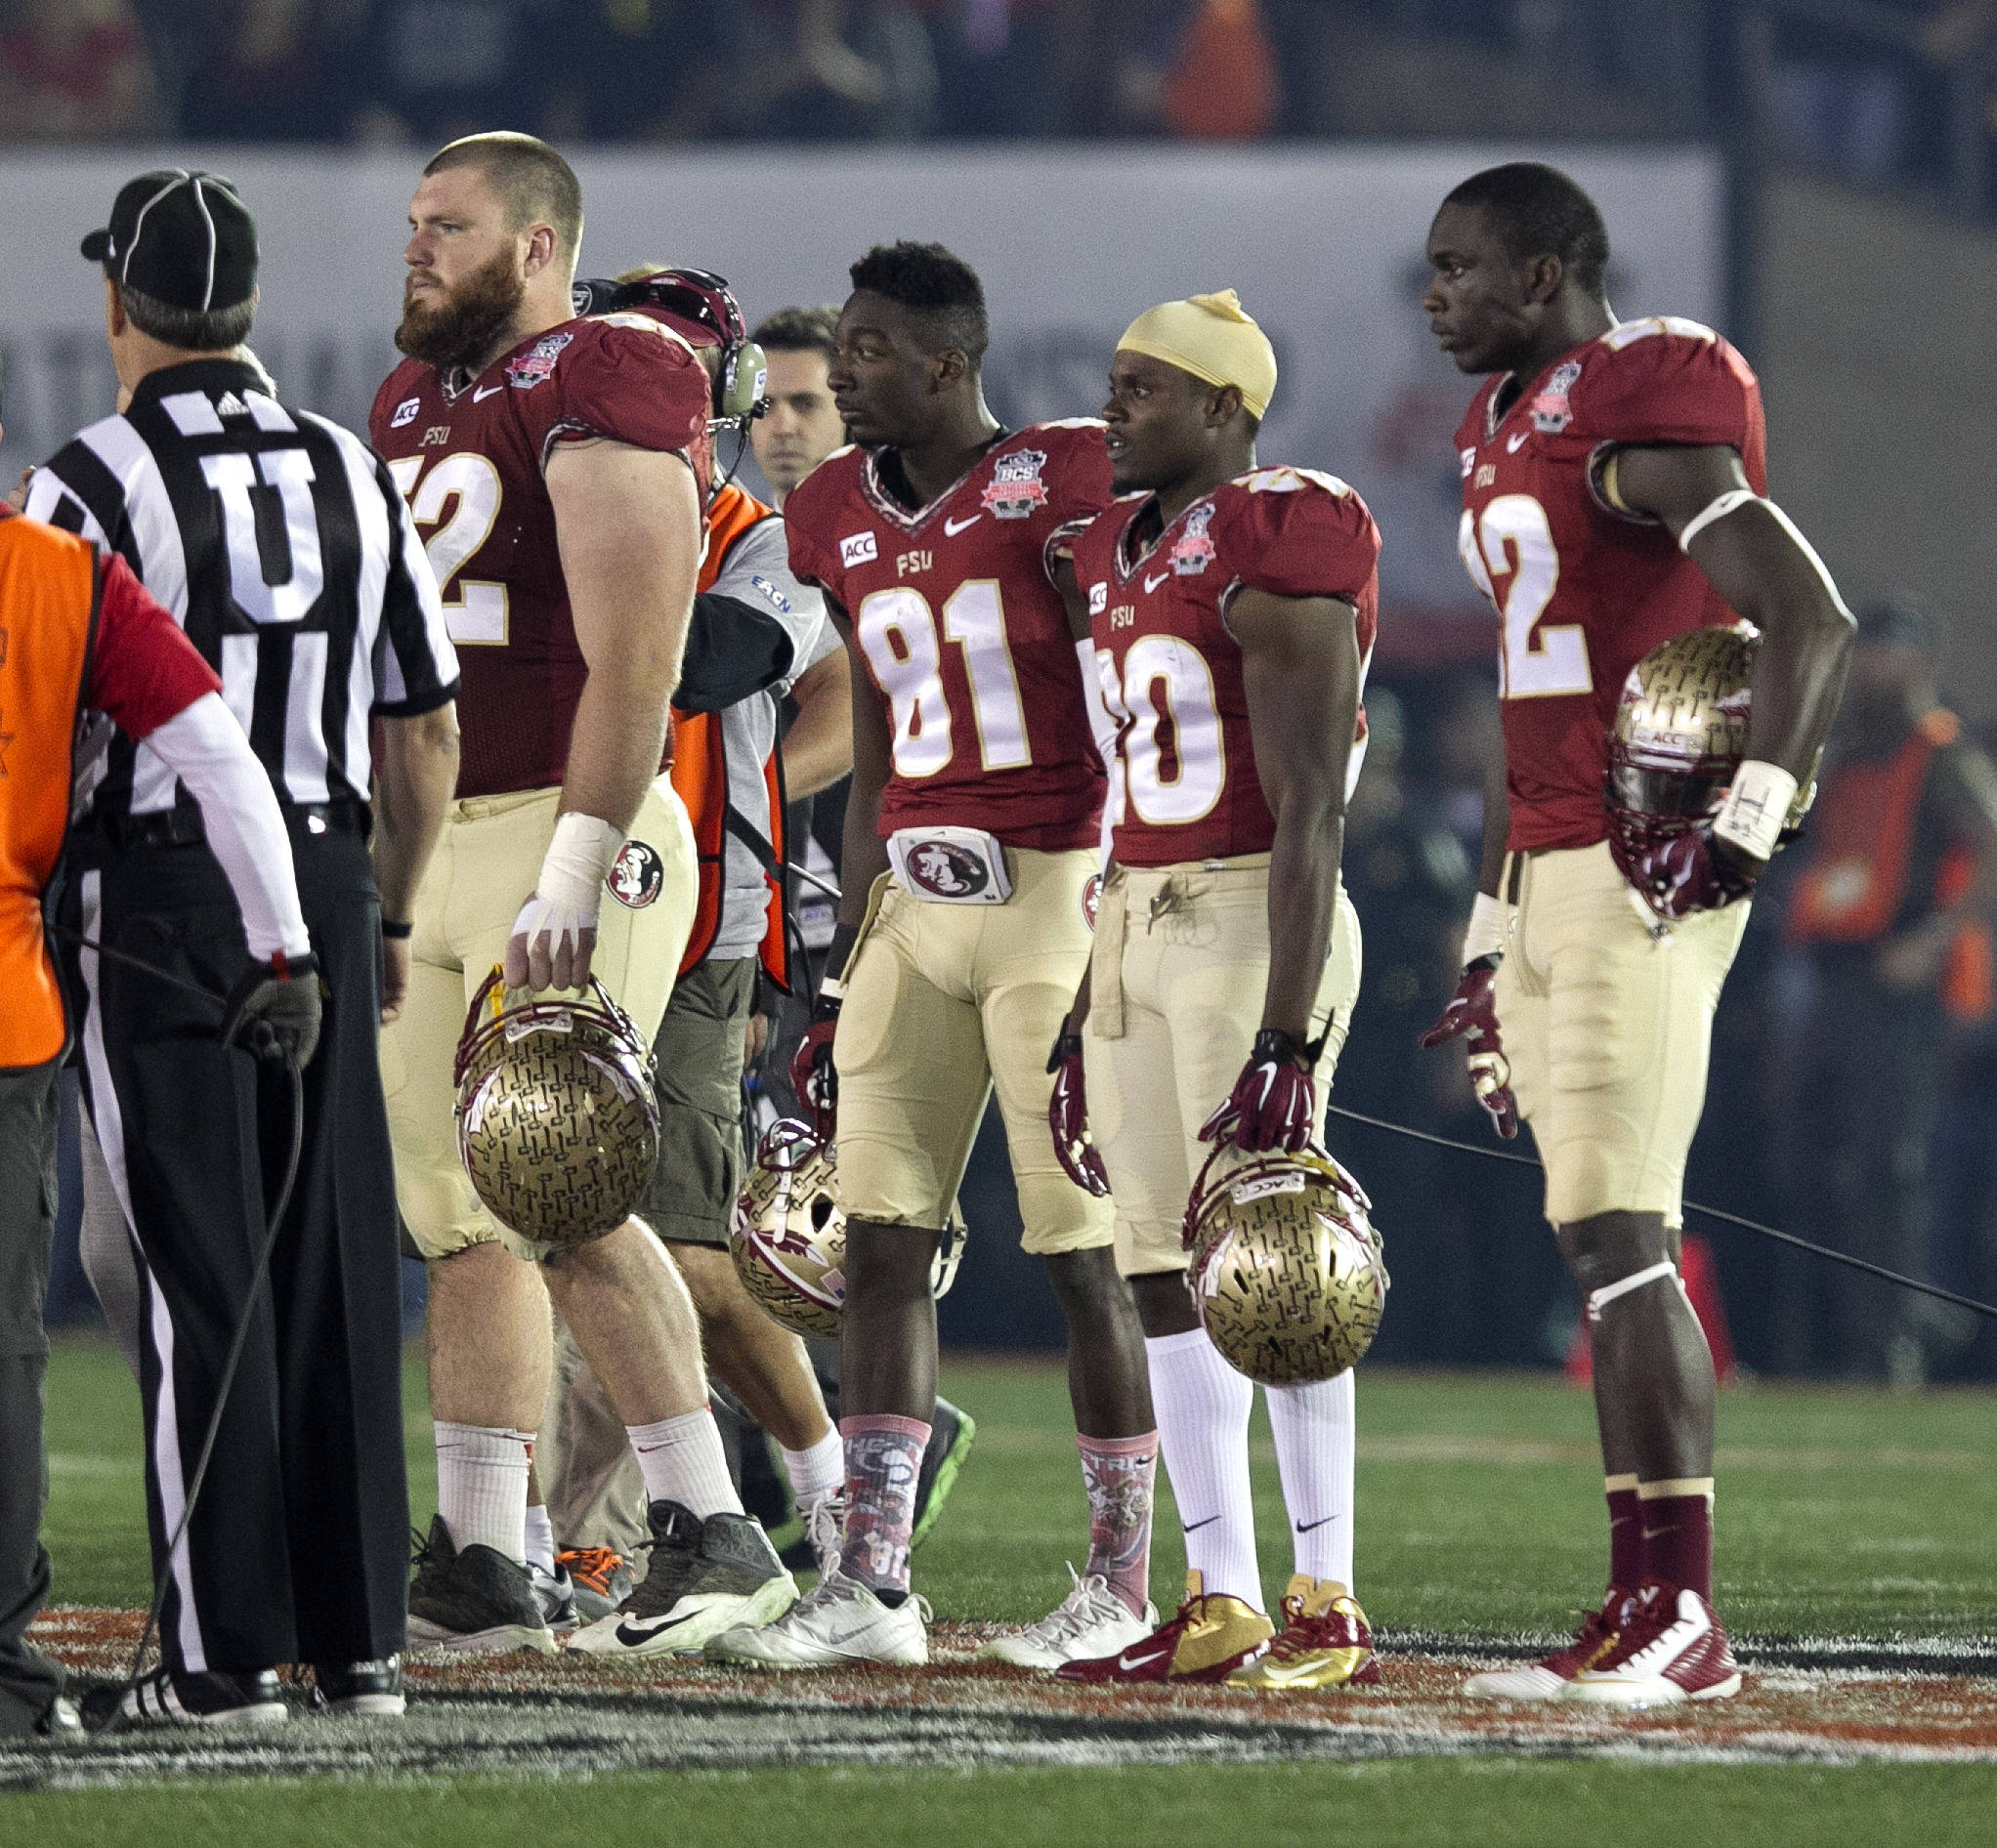 Captains Bryan Stork (52), Kenny Shaw (81), Lamarcus Joyner (20) and Telvin Smith (22) head out for the coin toss, BCS Championship, FSU vs Auburn, Rose Bowl, Pasadena, CA,  1-06-14,  (Photo by Steve Musco)